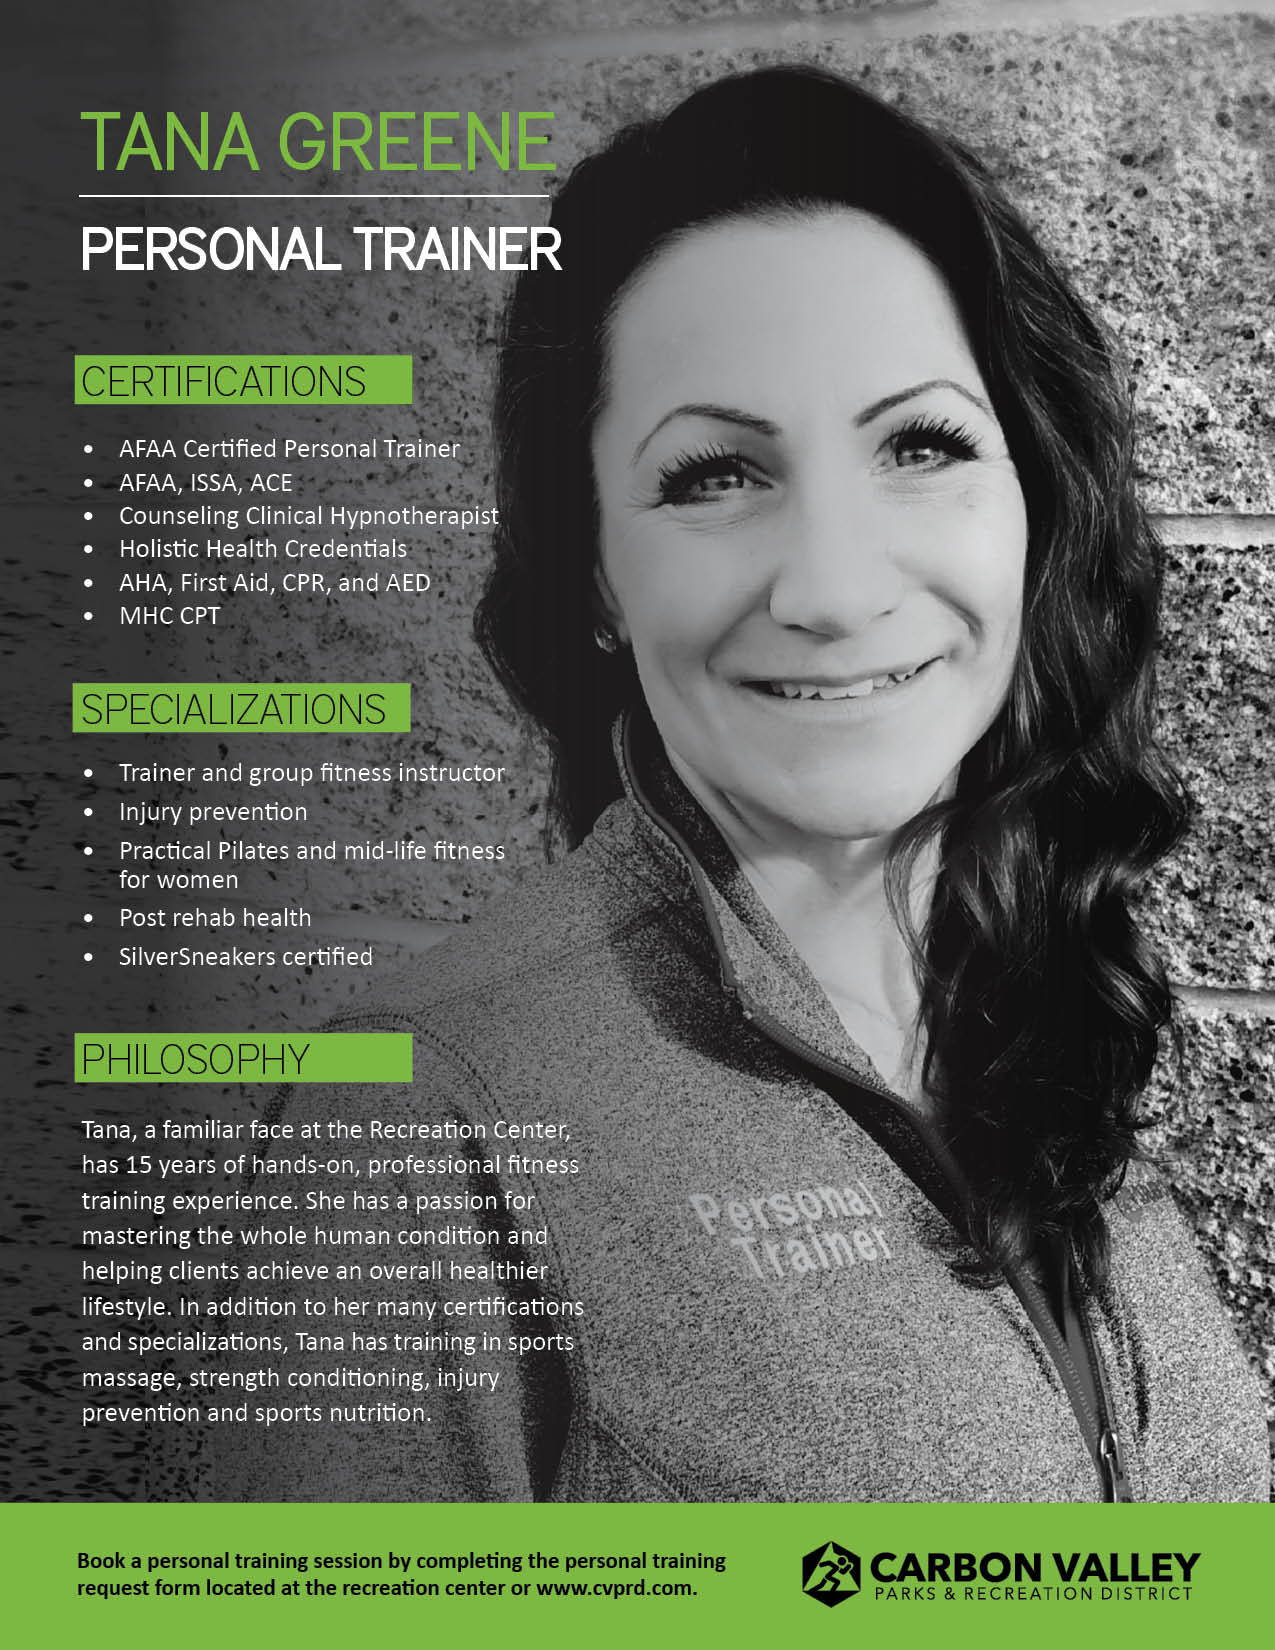 Photo of personal trainer Tana Greene with information about her personal training qualifications.